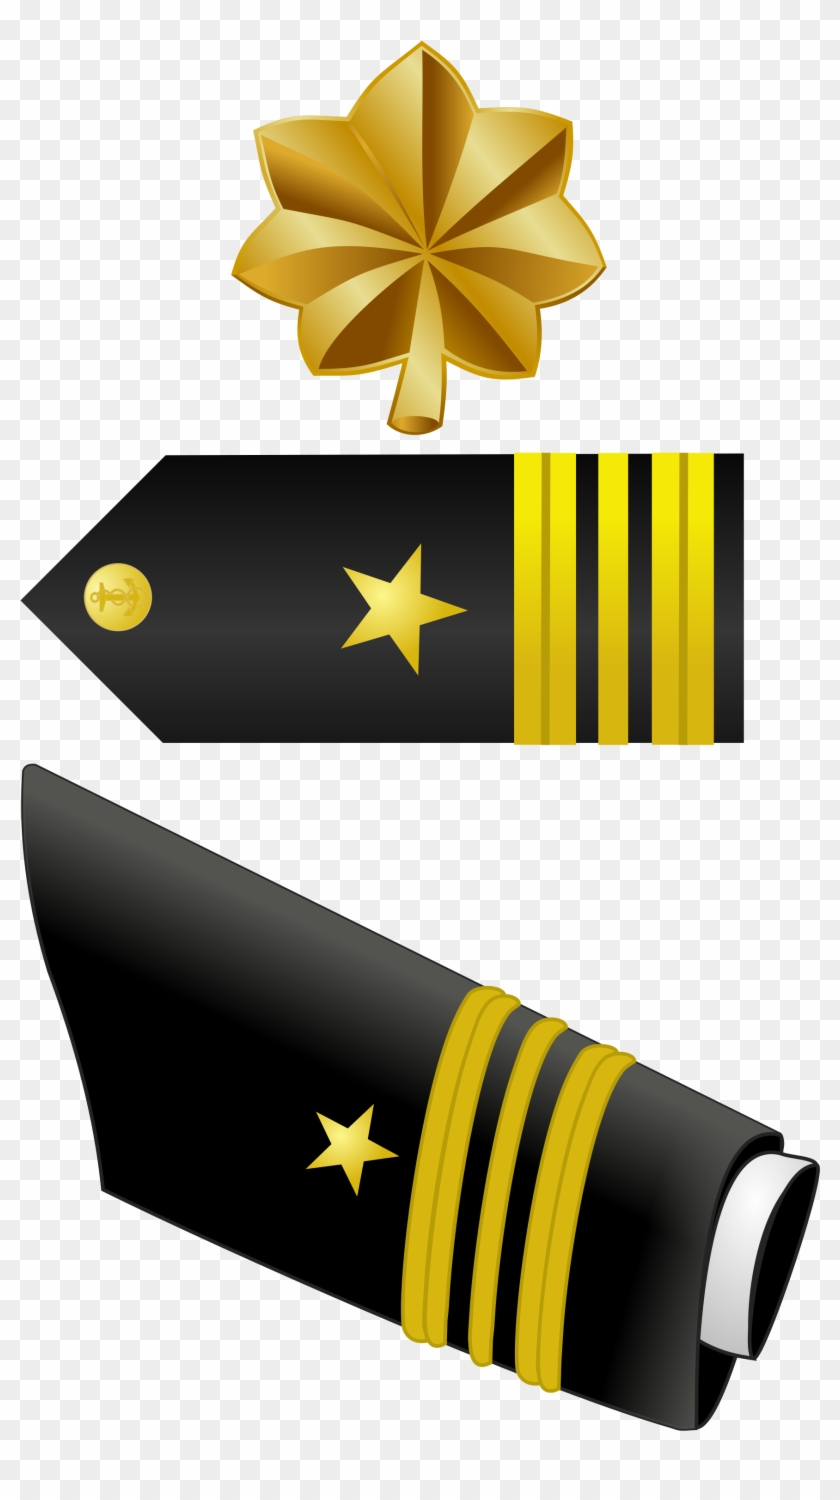 Cwo5 clipart png royalty free stock Promotions - Navy Lieutenant Commander Insignia - Free ... png royalty free stock